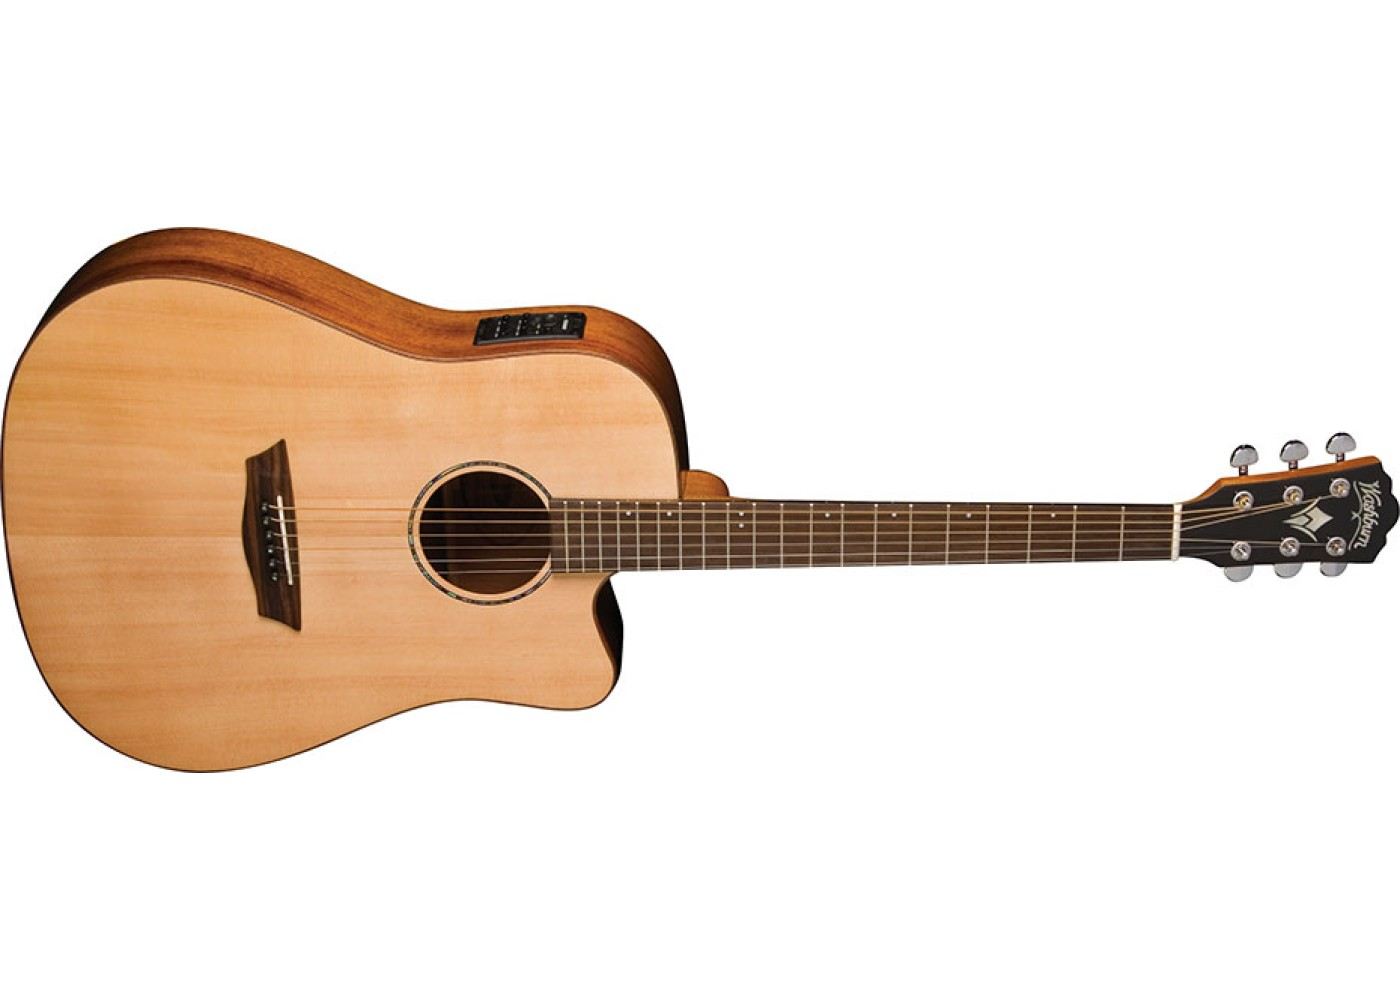 washburn solid wood wd150swce dreadnought acoustic electric guitar. Black Bedroom Furniture Sets. Home Design Ideas